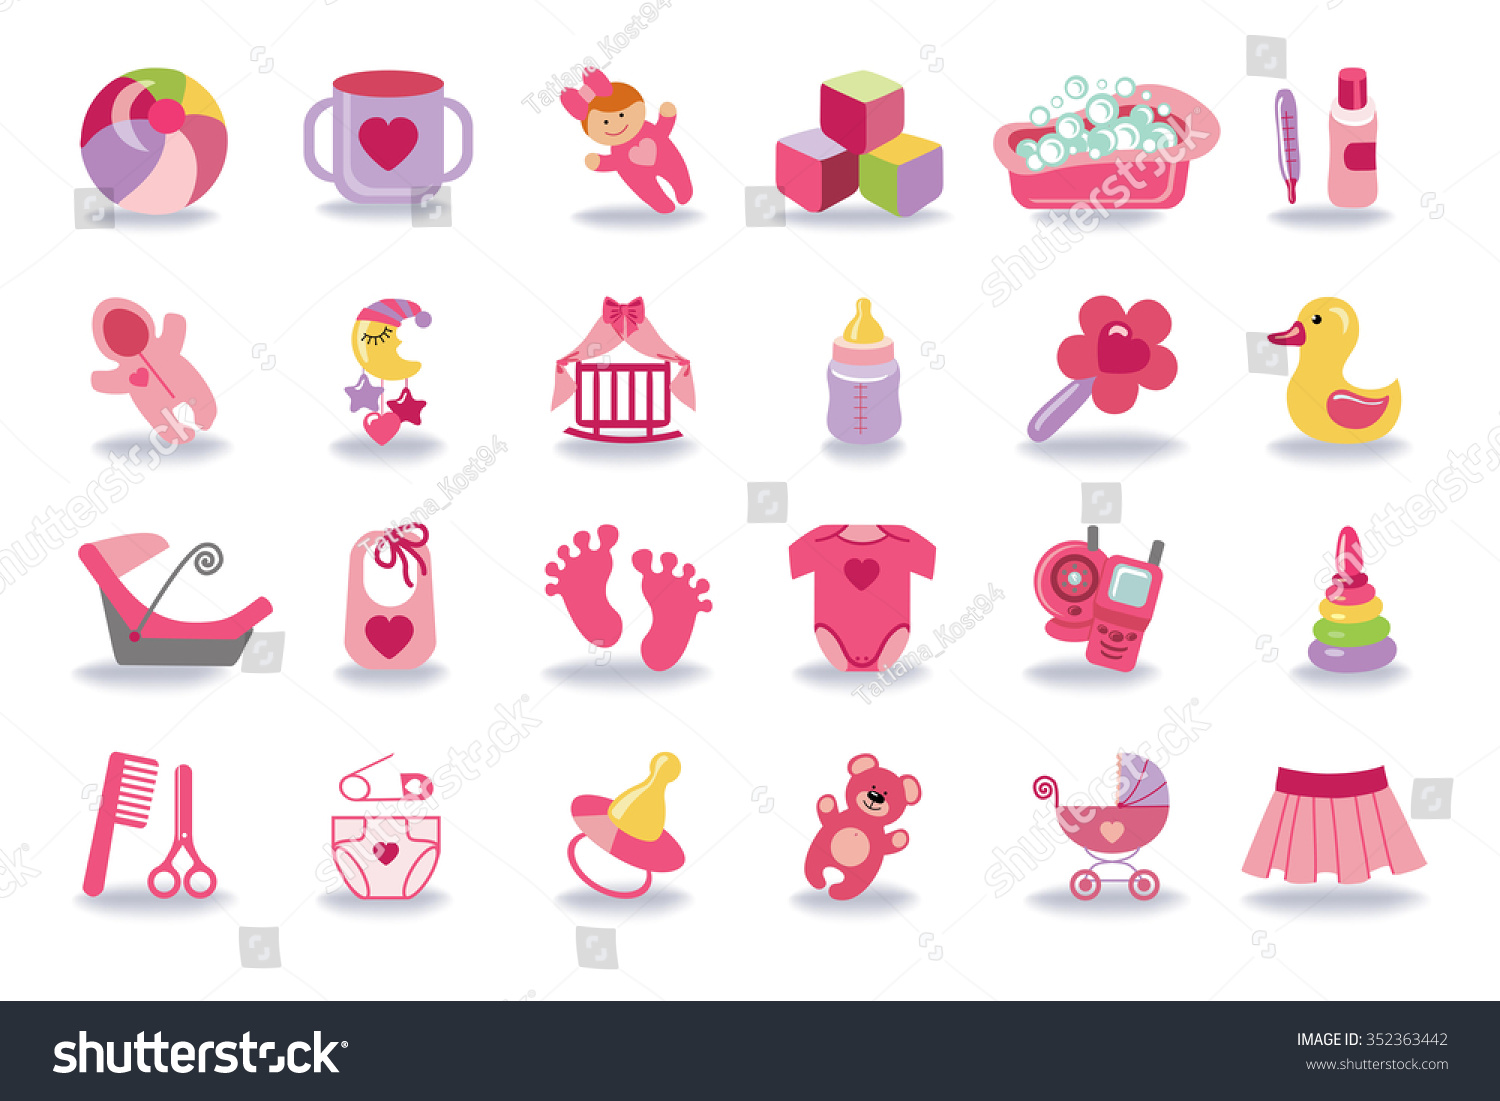 the gallery for gt baby girl symbols